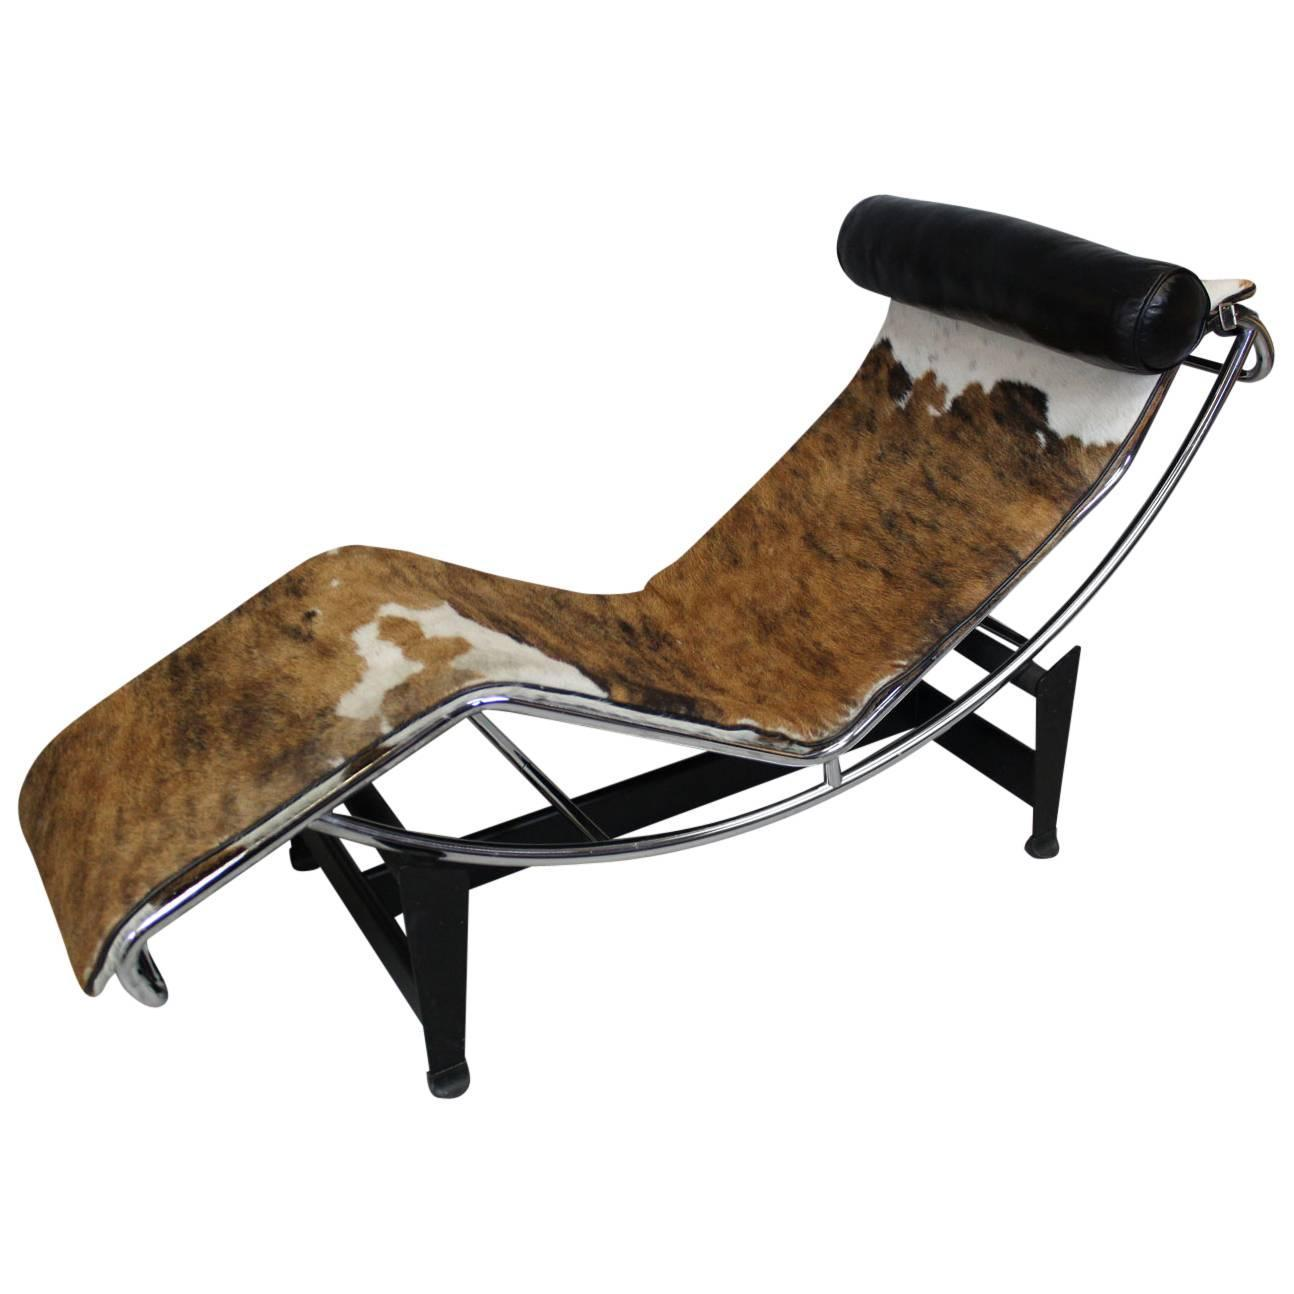 le corbusier lc4 chaise lounge manufactured by cassina at 1stdibs. Black Bedroom Furniture Sets. Home Design Ideas